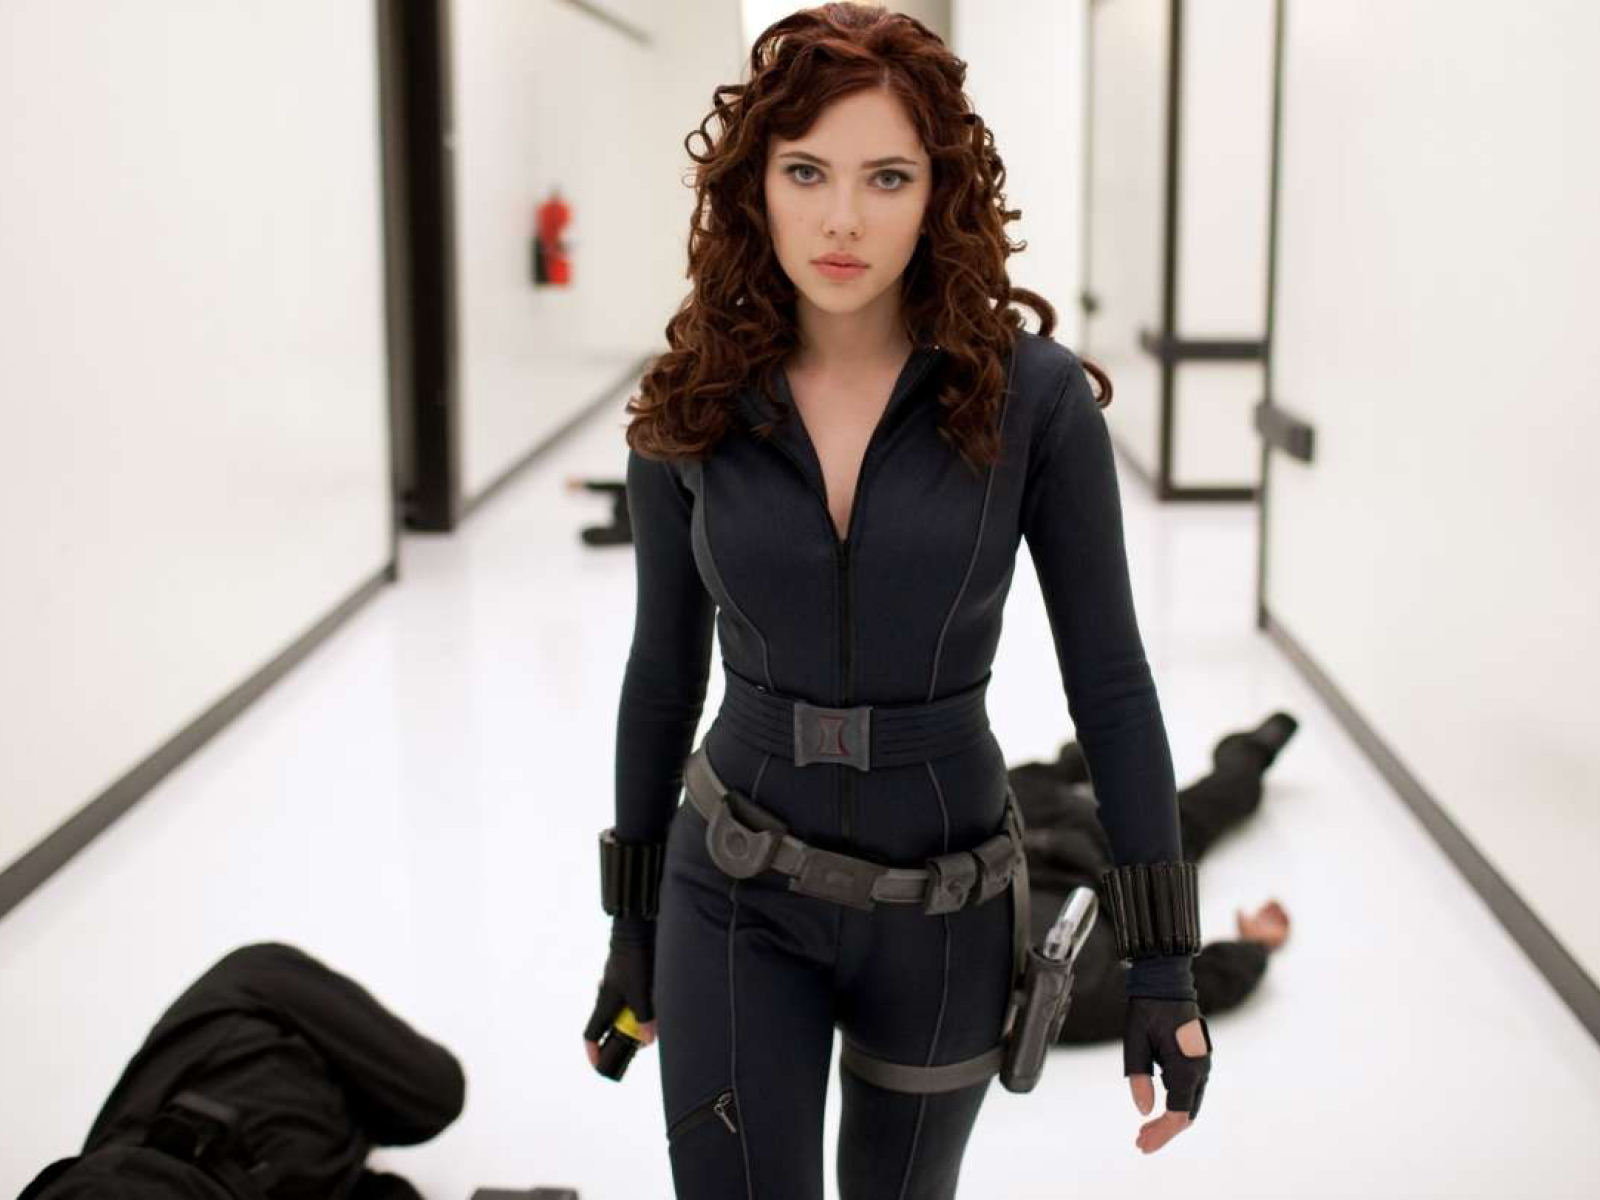 Beautiful Black Widow Scarlett Johansson